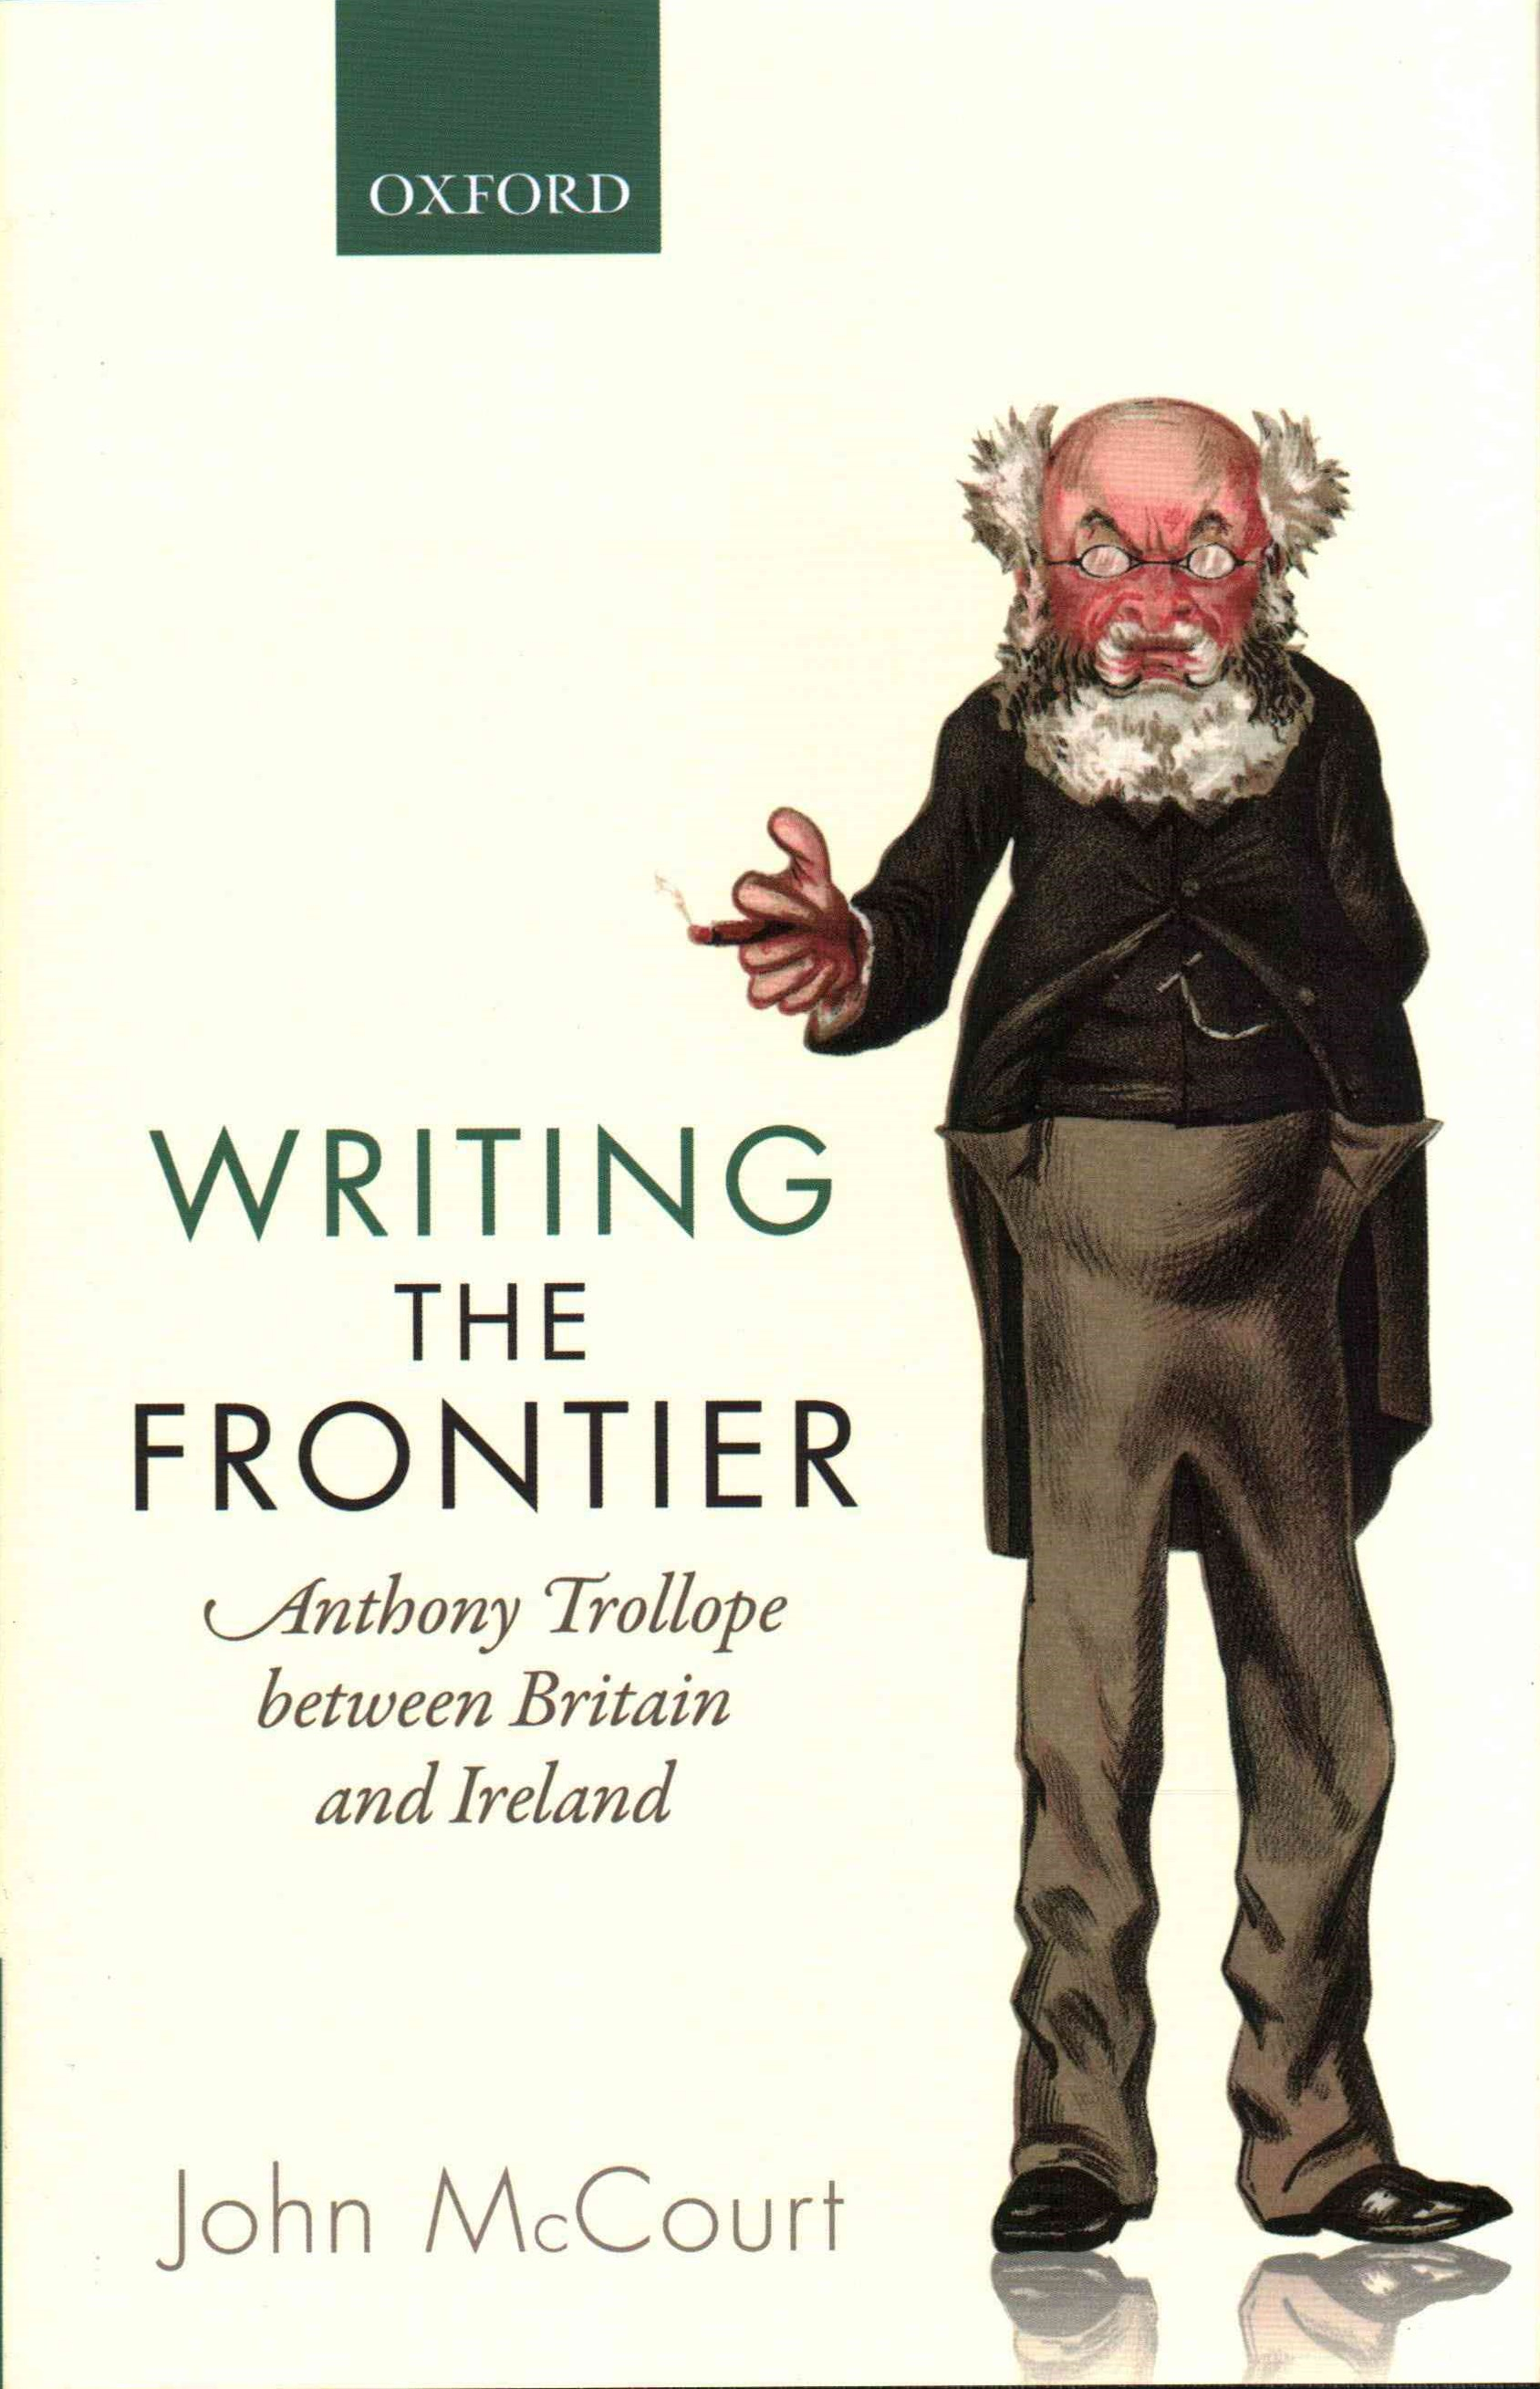 Writing the Frontier